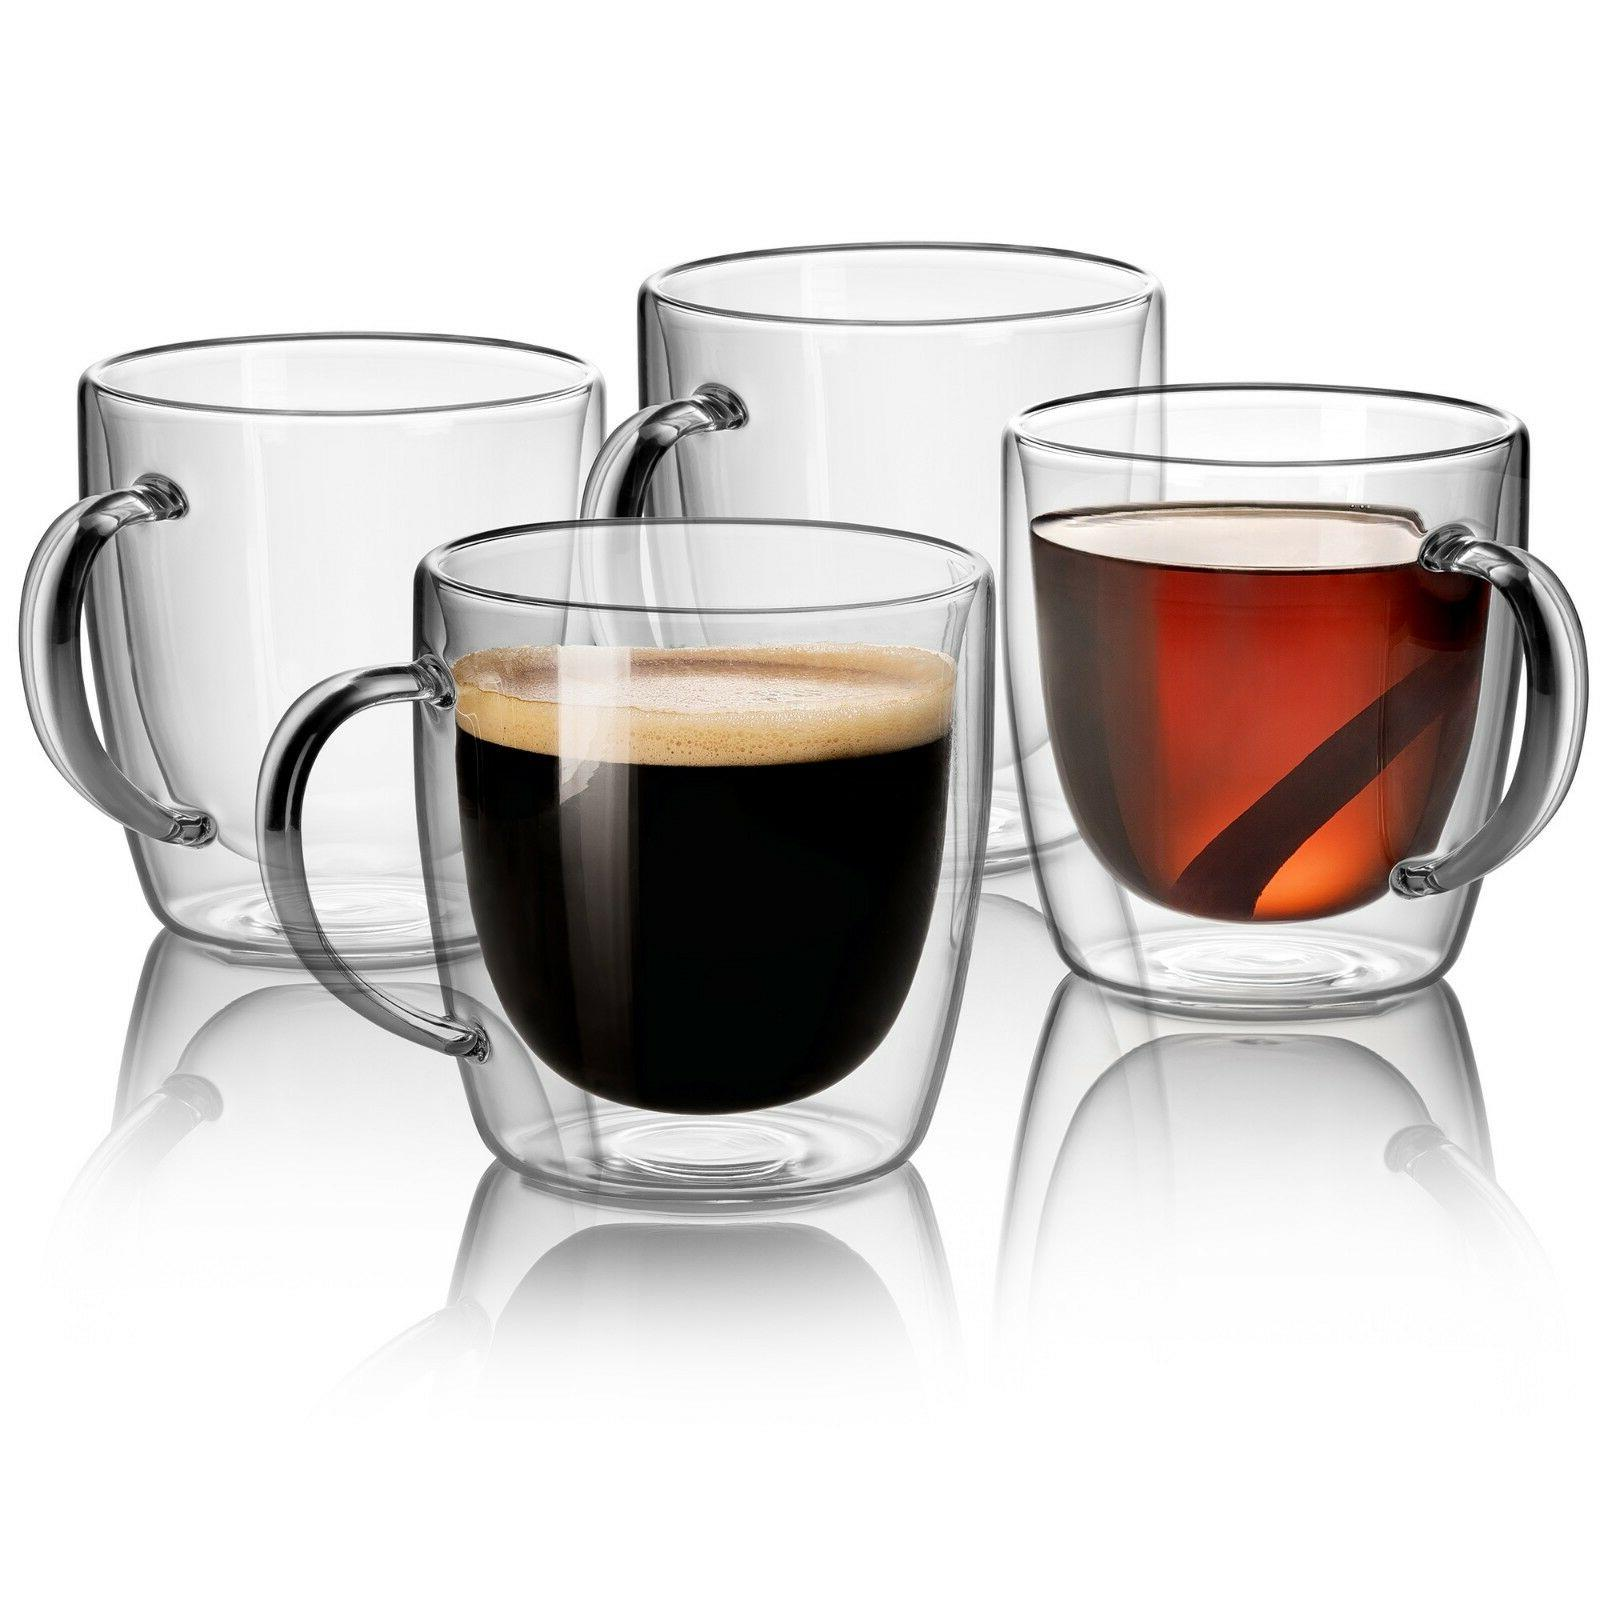 jecobi strong clear glass double wall coffee